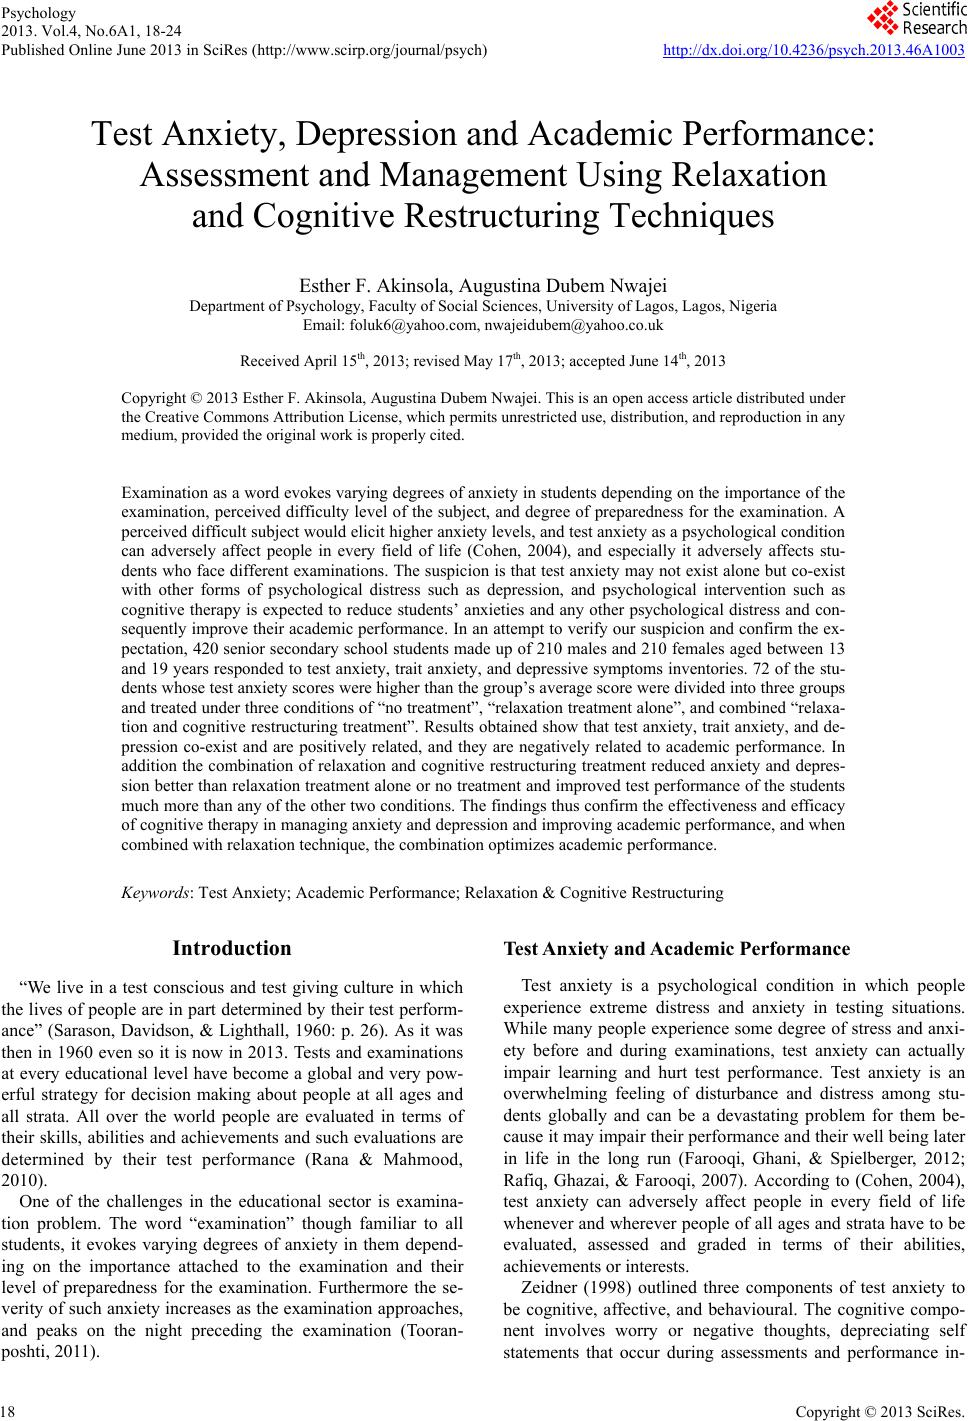 test anxiety depression and academic performance assessment and test anxiety depression and academic performance assessment and management using relaxation and cognitive restructuring techniques